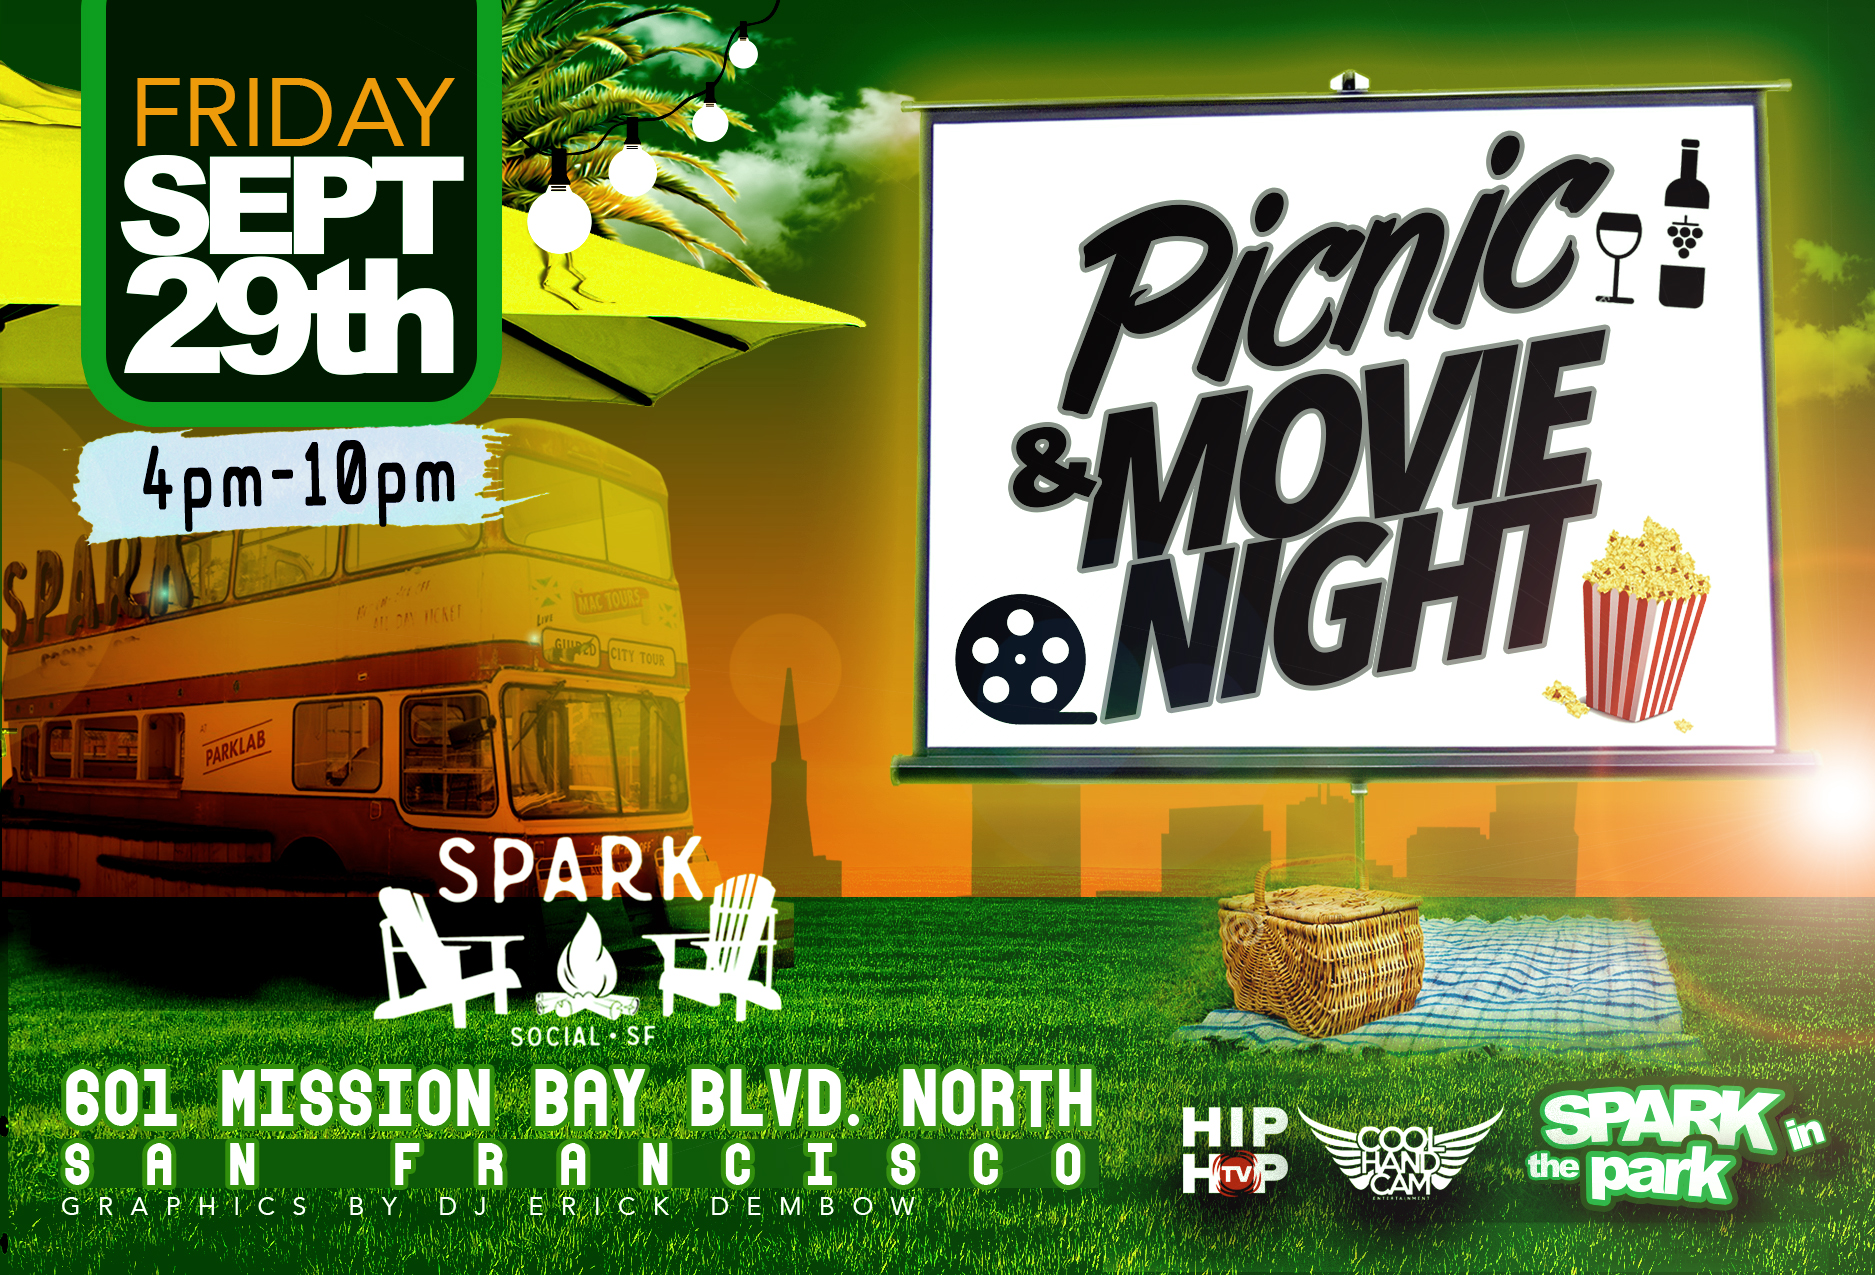 09.29.2017 SPARK Picnic & Movie Night or SPARK in the Park or Munchie Movie Night.JPG